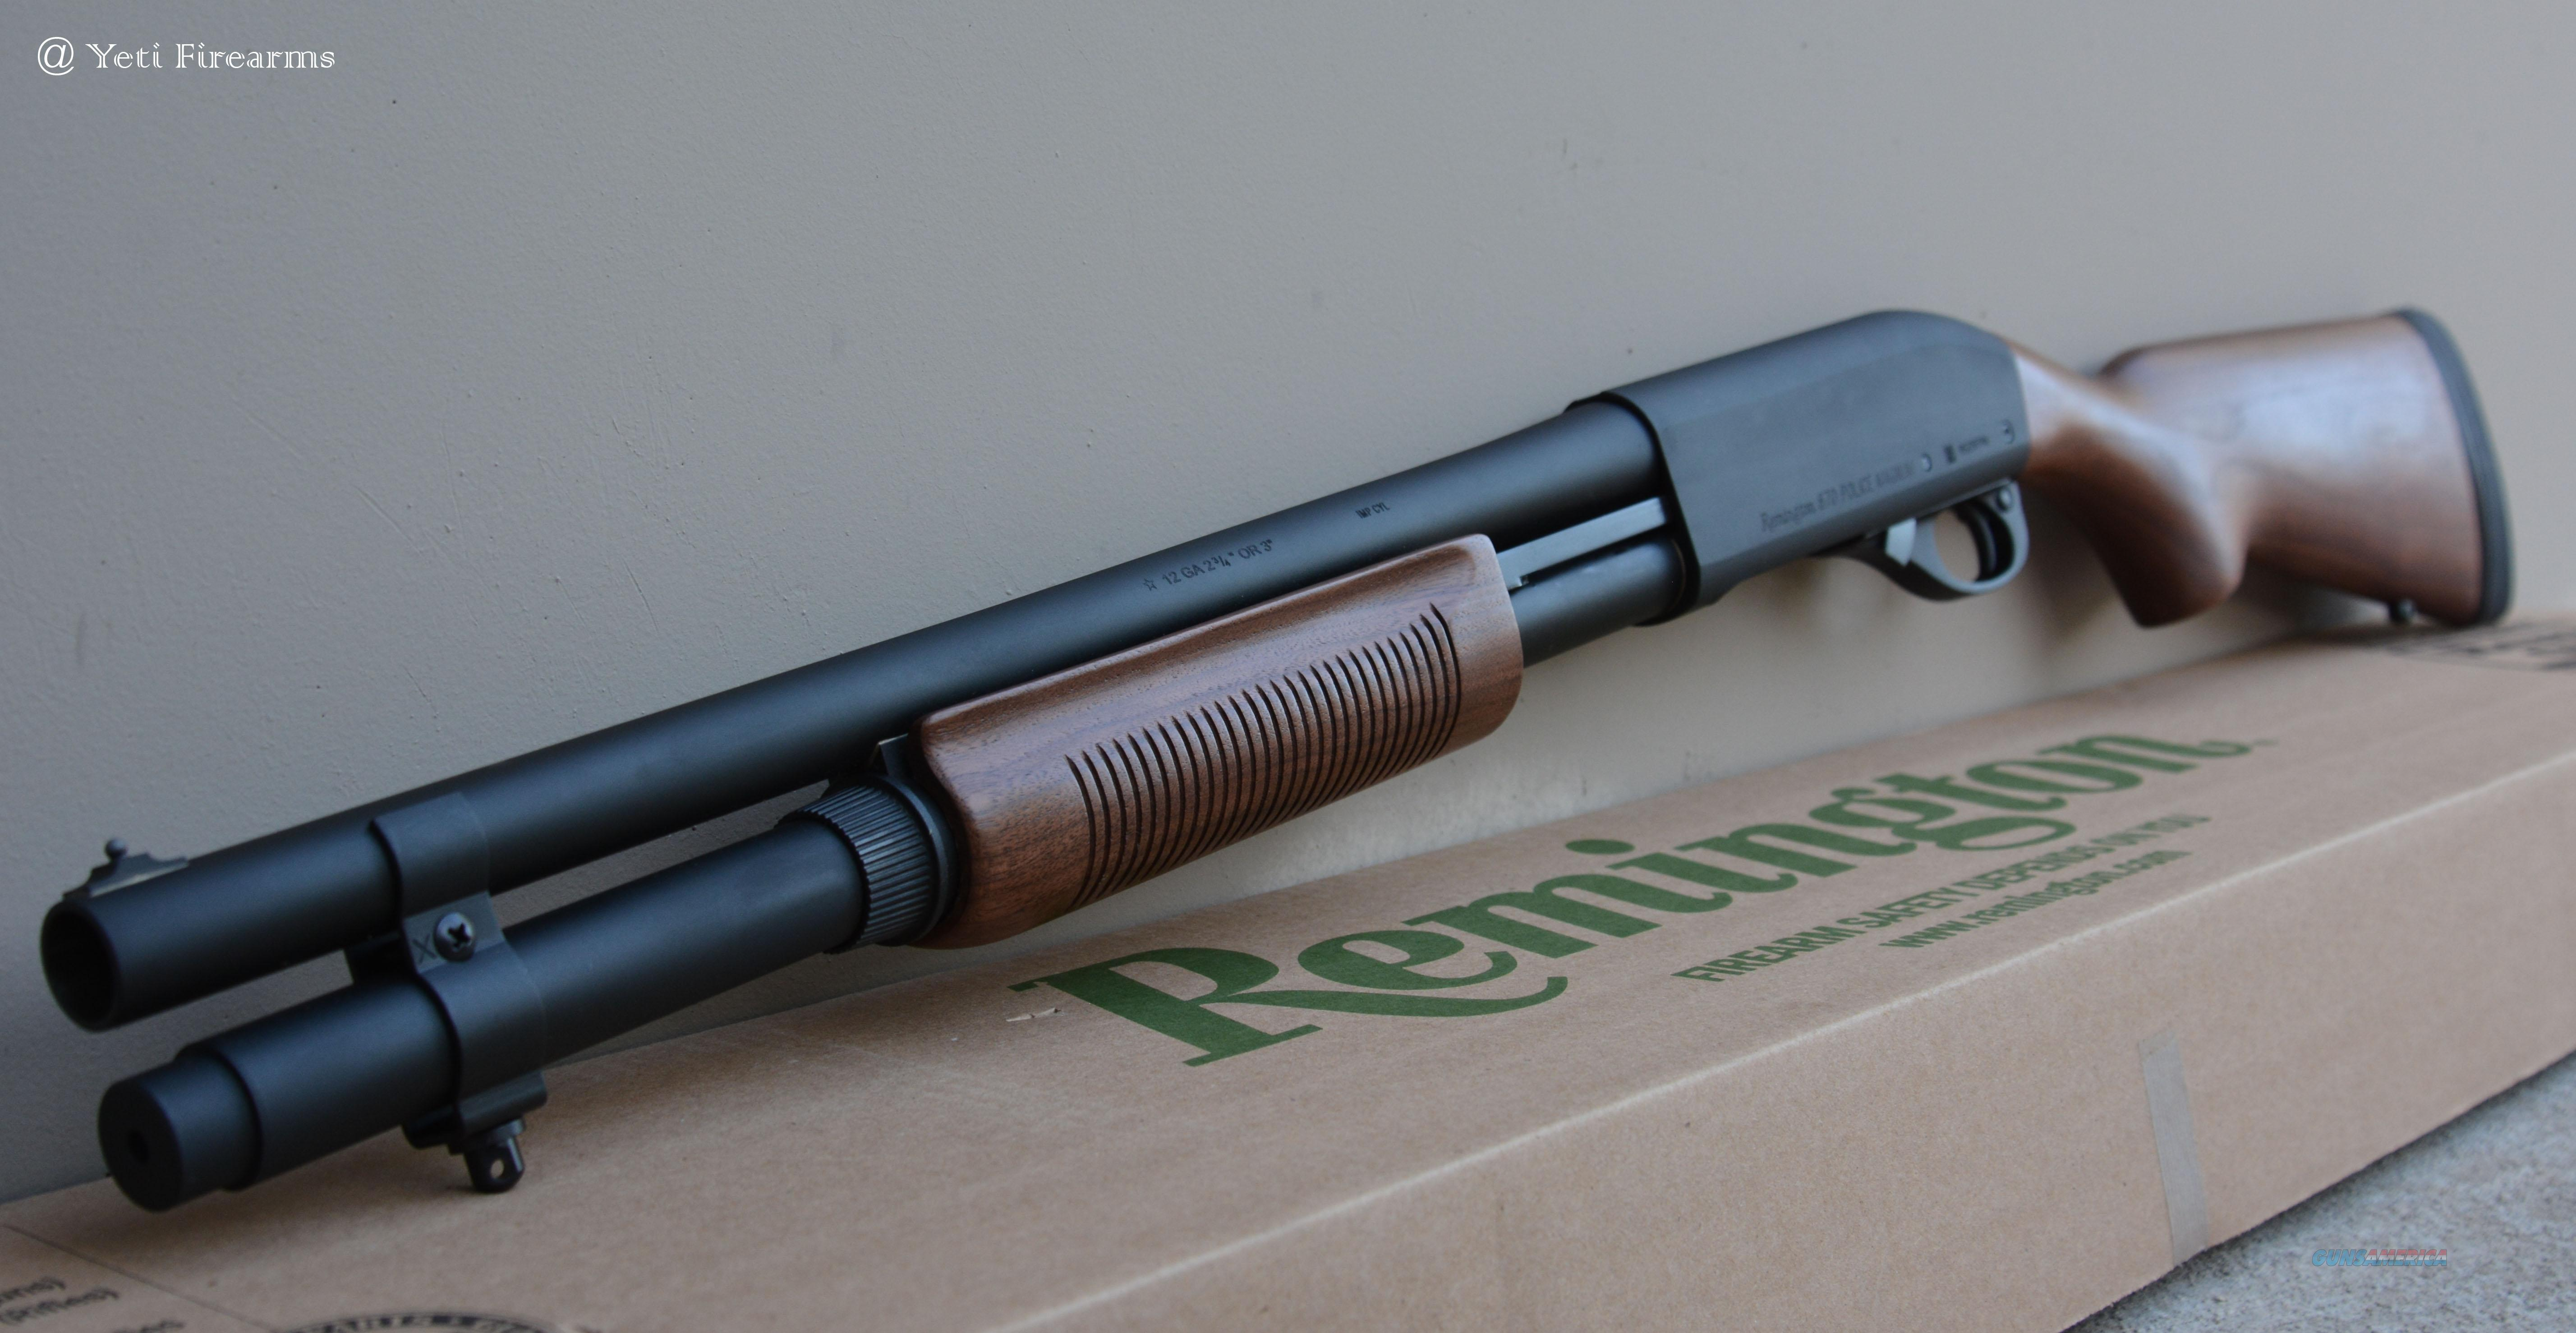 Remington 870 Police Magnum 12 Ga 24903 4903 Wood  Guns > Shotguns > Remington Shotguns  > Pump > Tactical